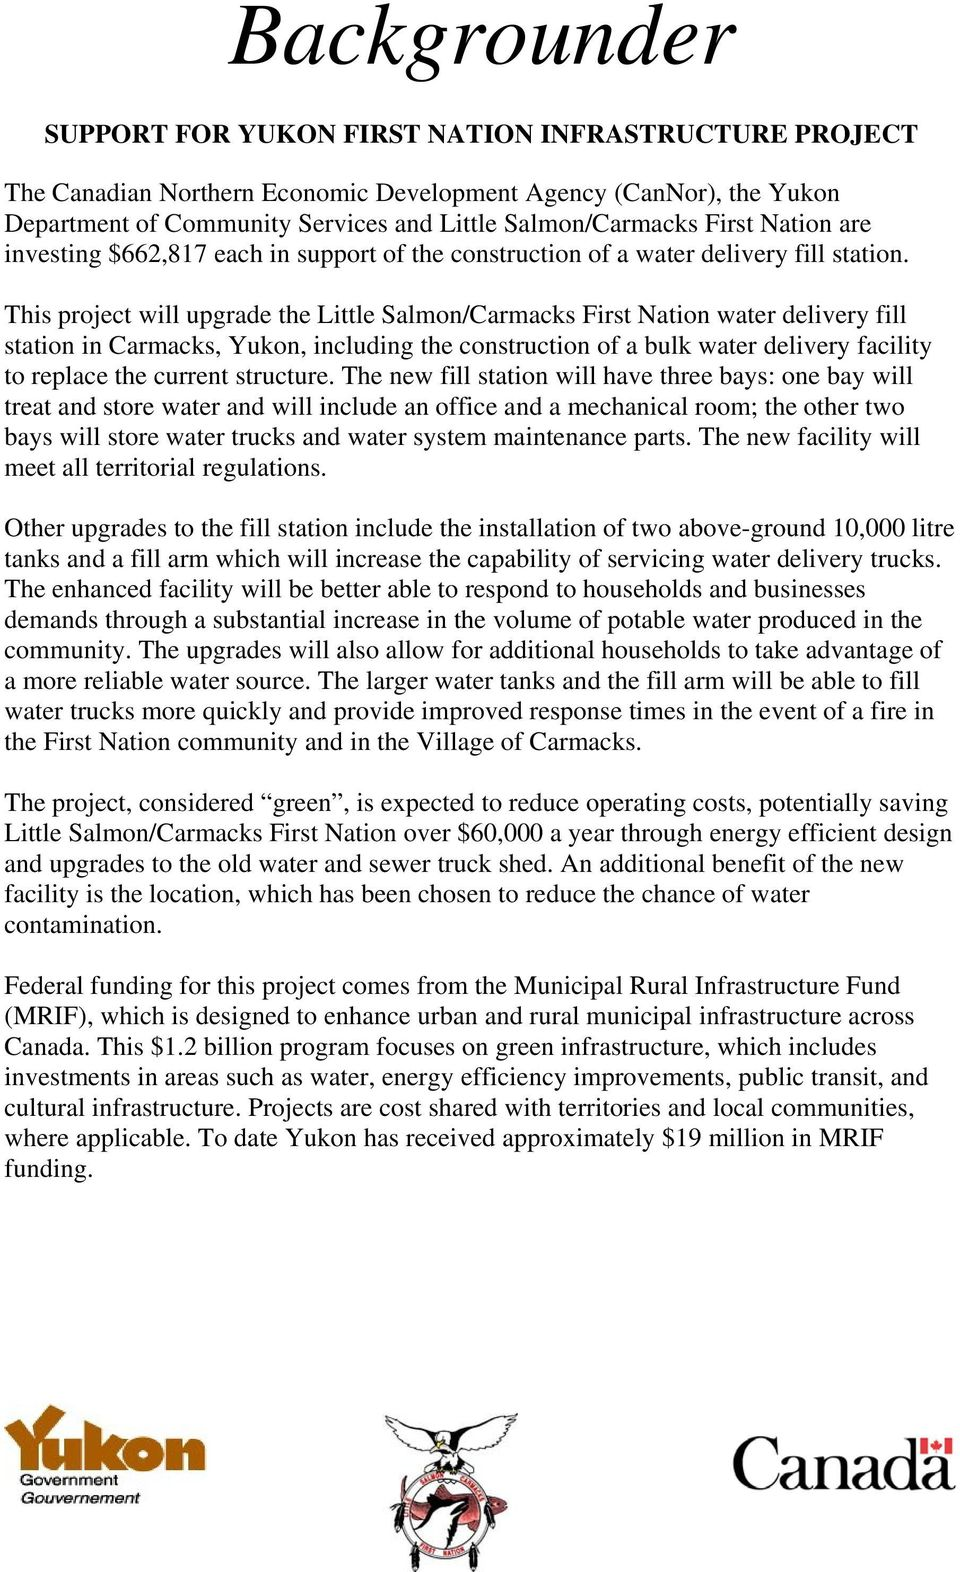 This project will upgrade the Little Salmon/Carmacks First Nation water delivery fill station in Carmacks, Yukon, including the construction of a bulk water delivery facility to replace the current